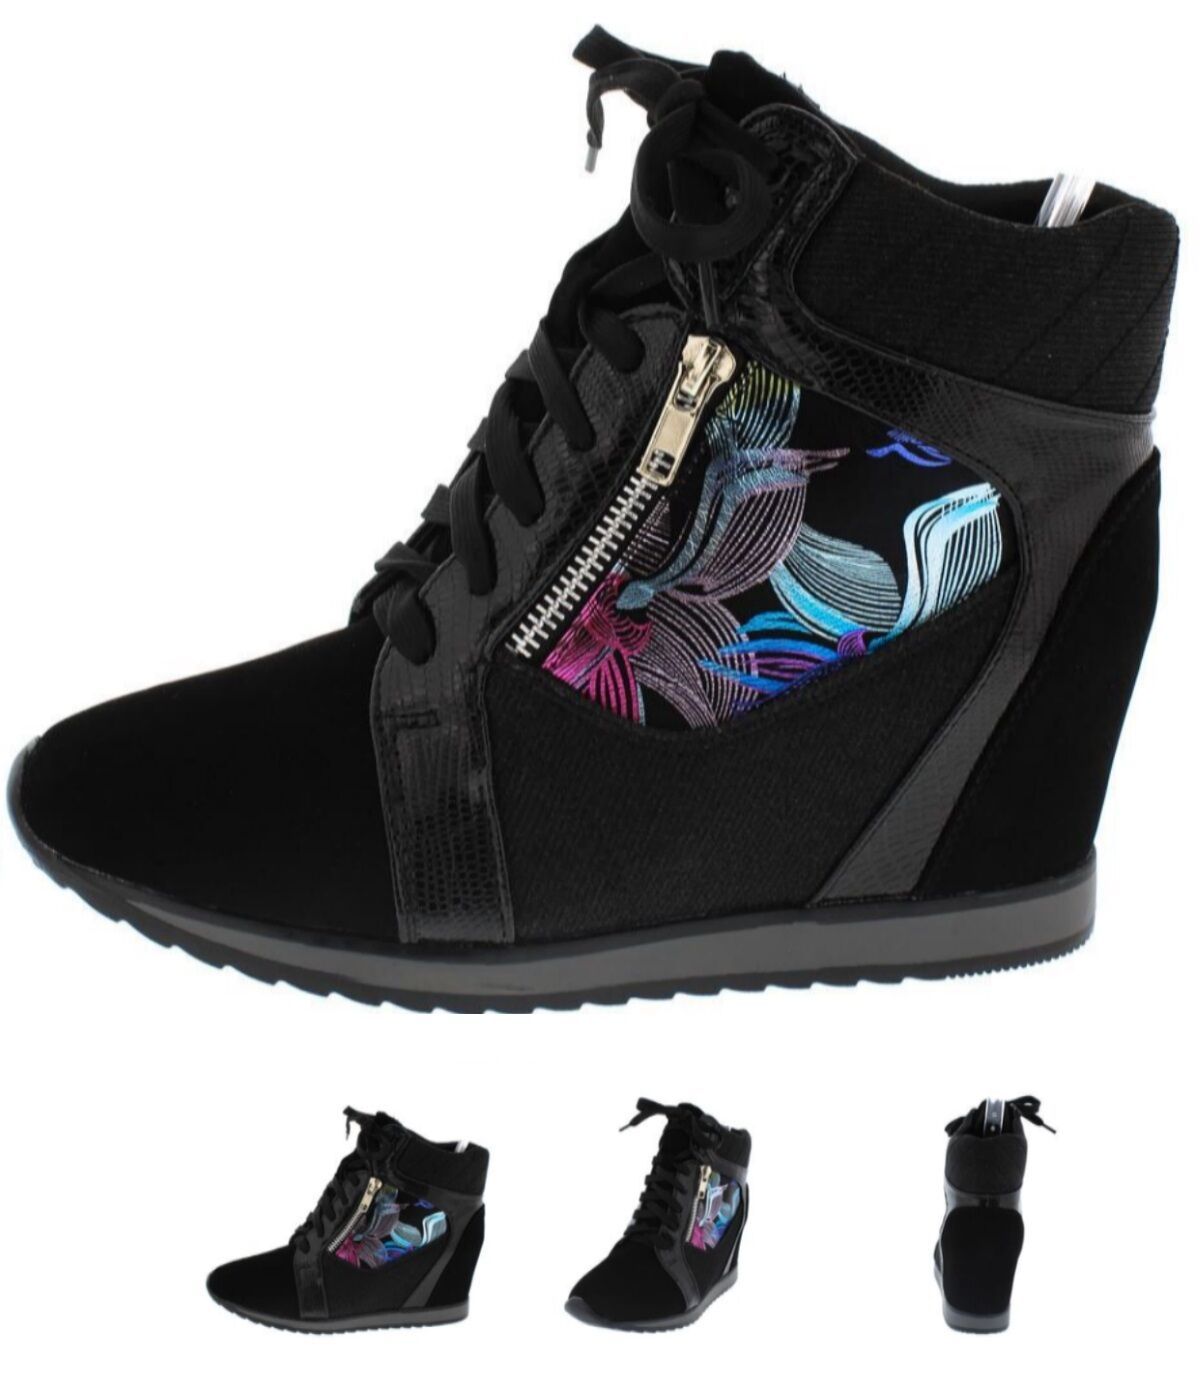 Women Fashion shoes High Top Ankle Boots Wedge Lace Up Sneakers Hidden Heels S15